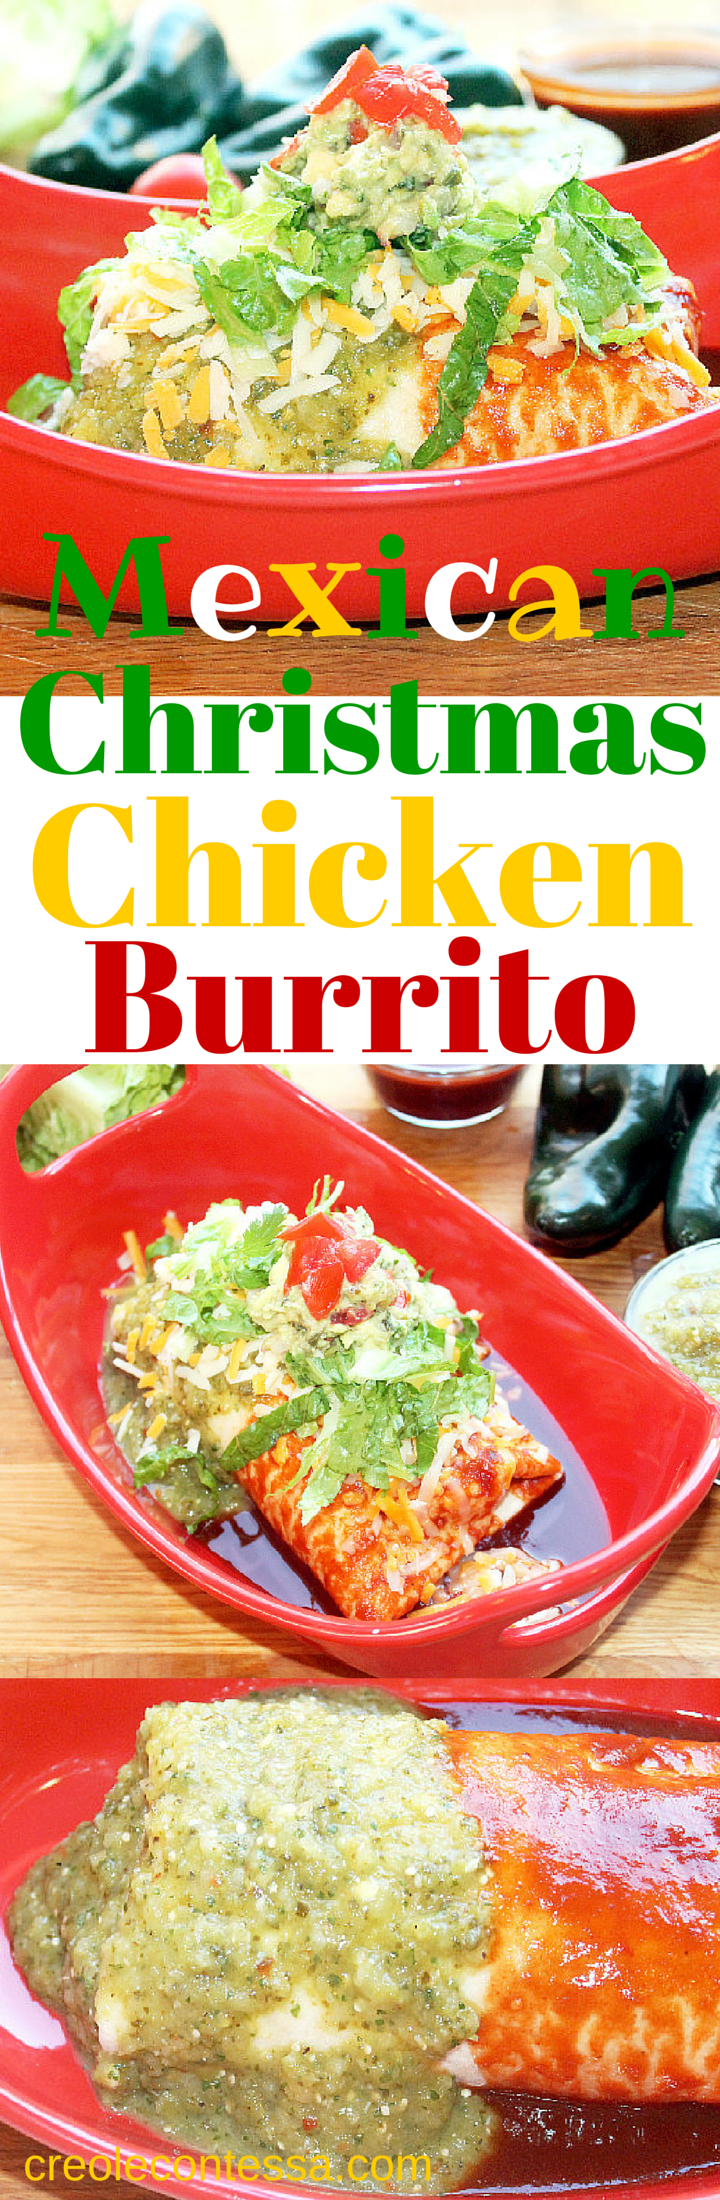 Mexican Christmas Food.Mexican Christmas Chicken Burrito